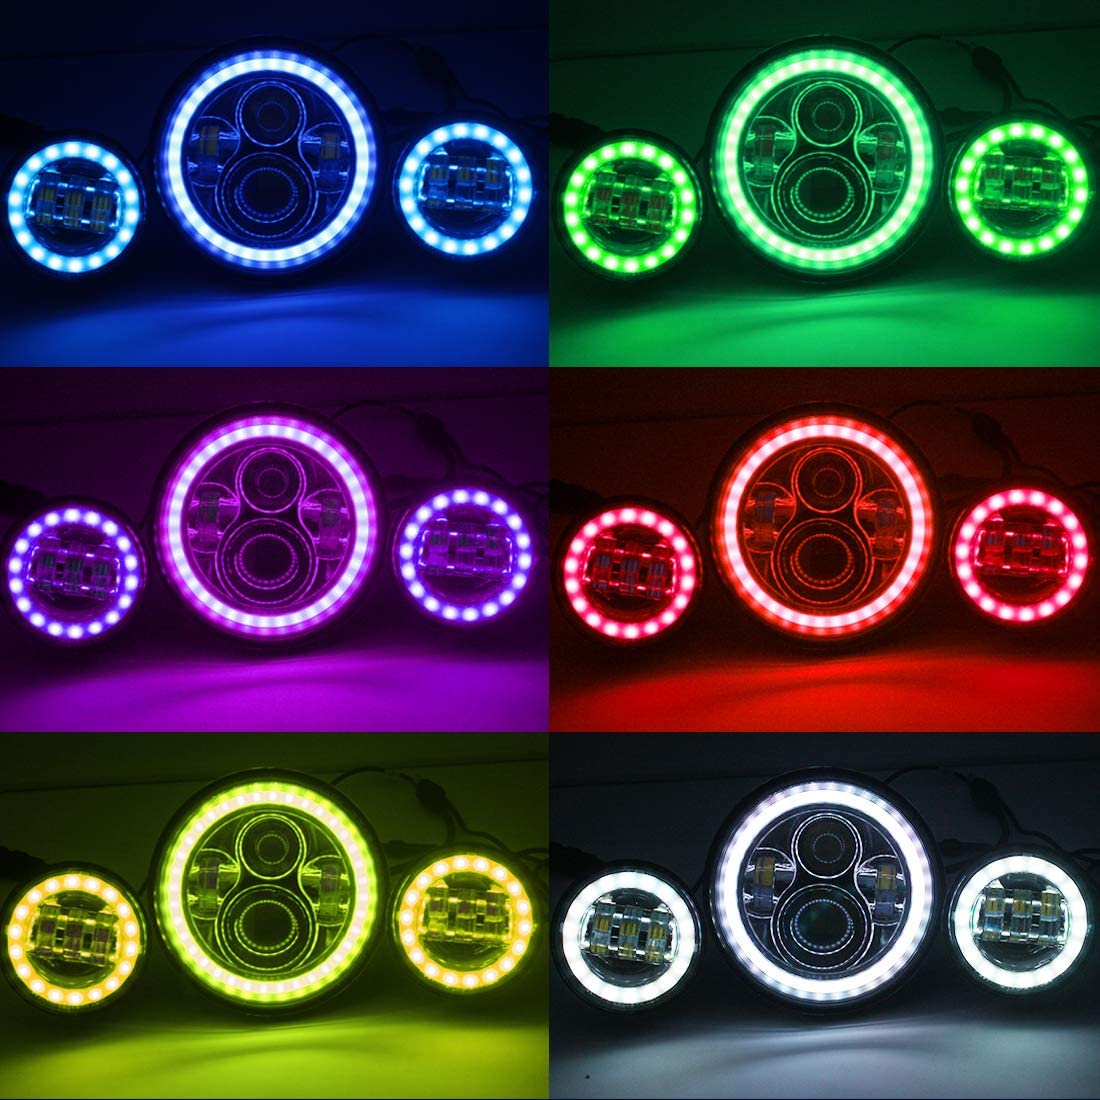 DOT H4 7 Multi-color Halo Headlight /& RGB Halo Passing Light For Harley Davidson Electra Street Glide Road King Ultra Classic Heritage Softail Slim Deluxe Fatboy Motorcycle Projector Headlamp Set